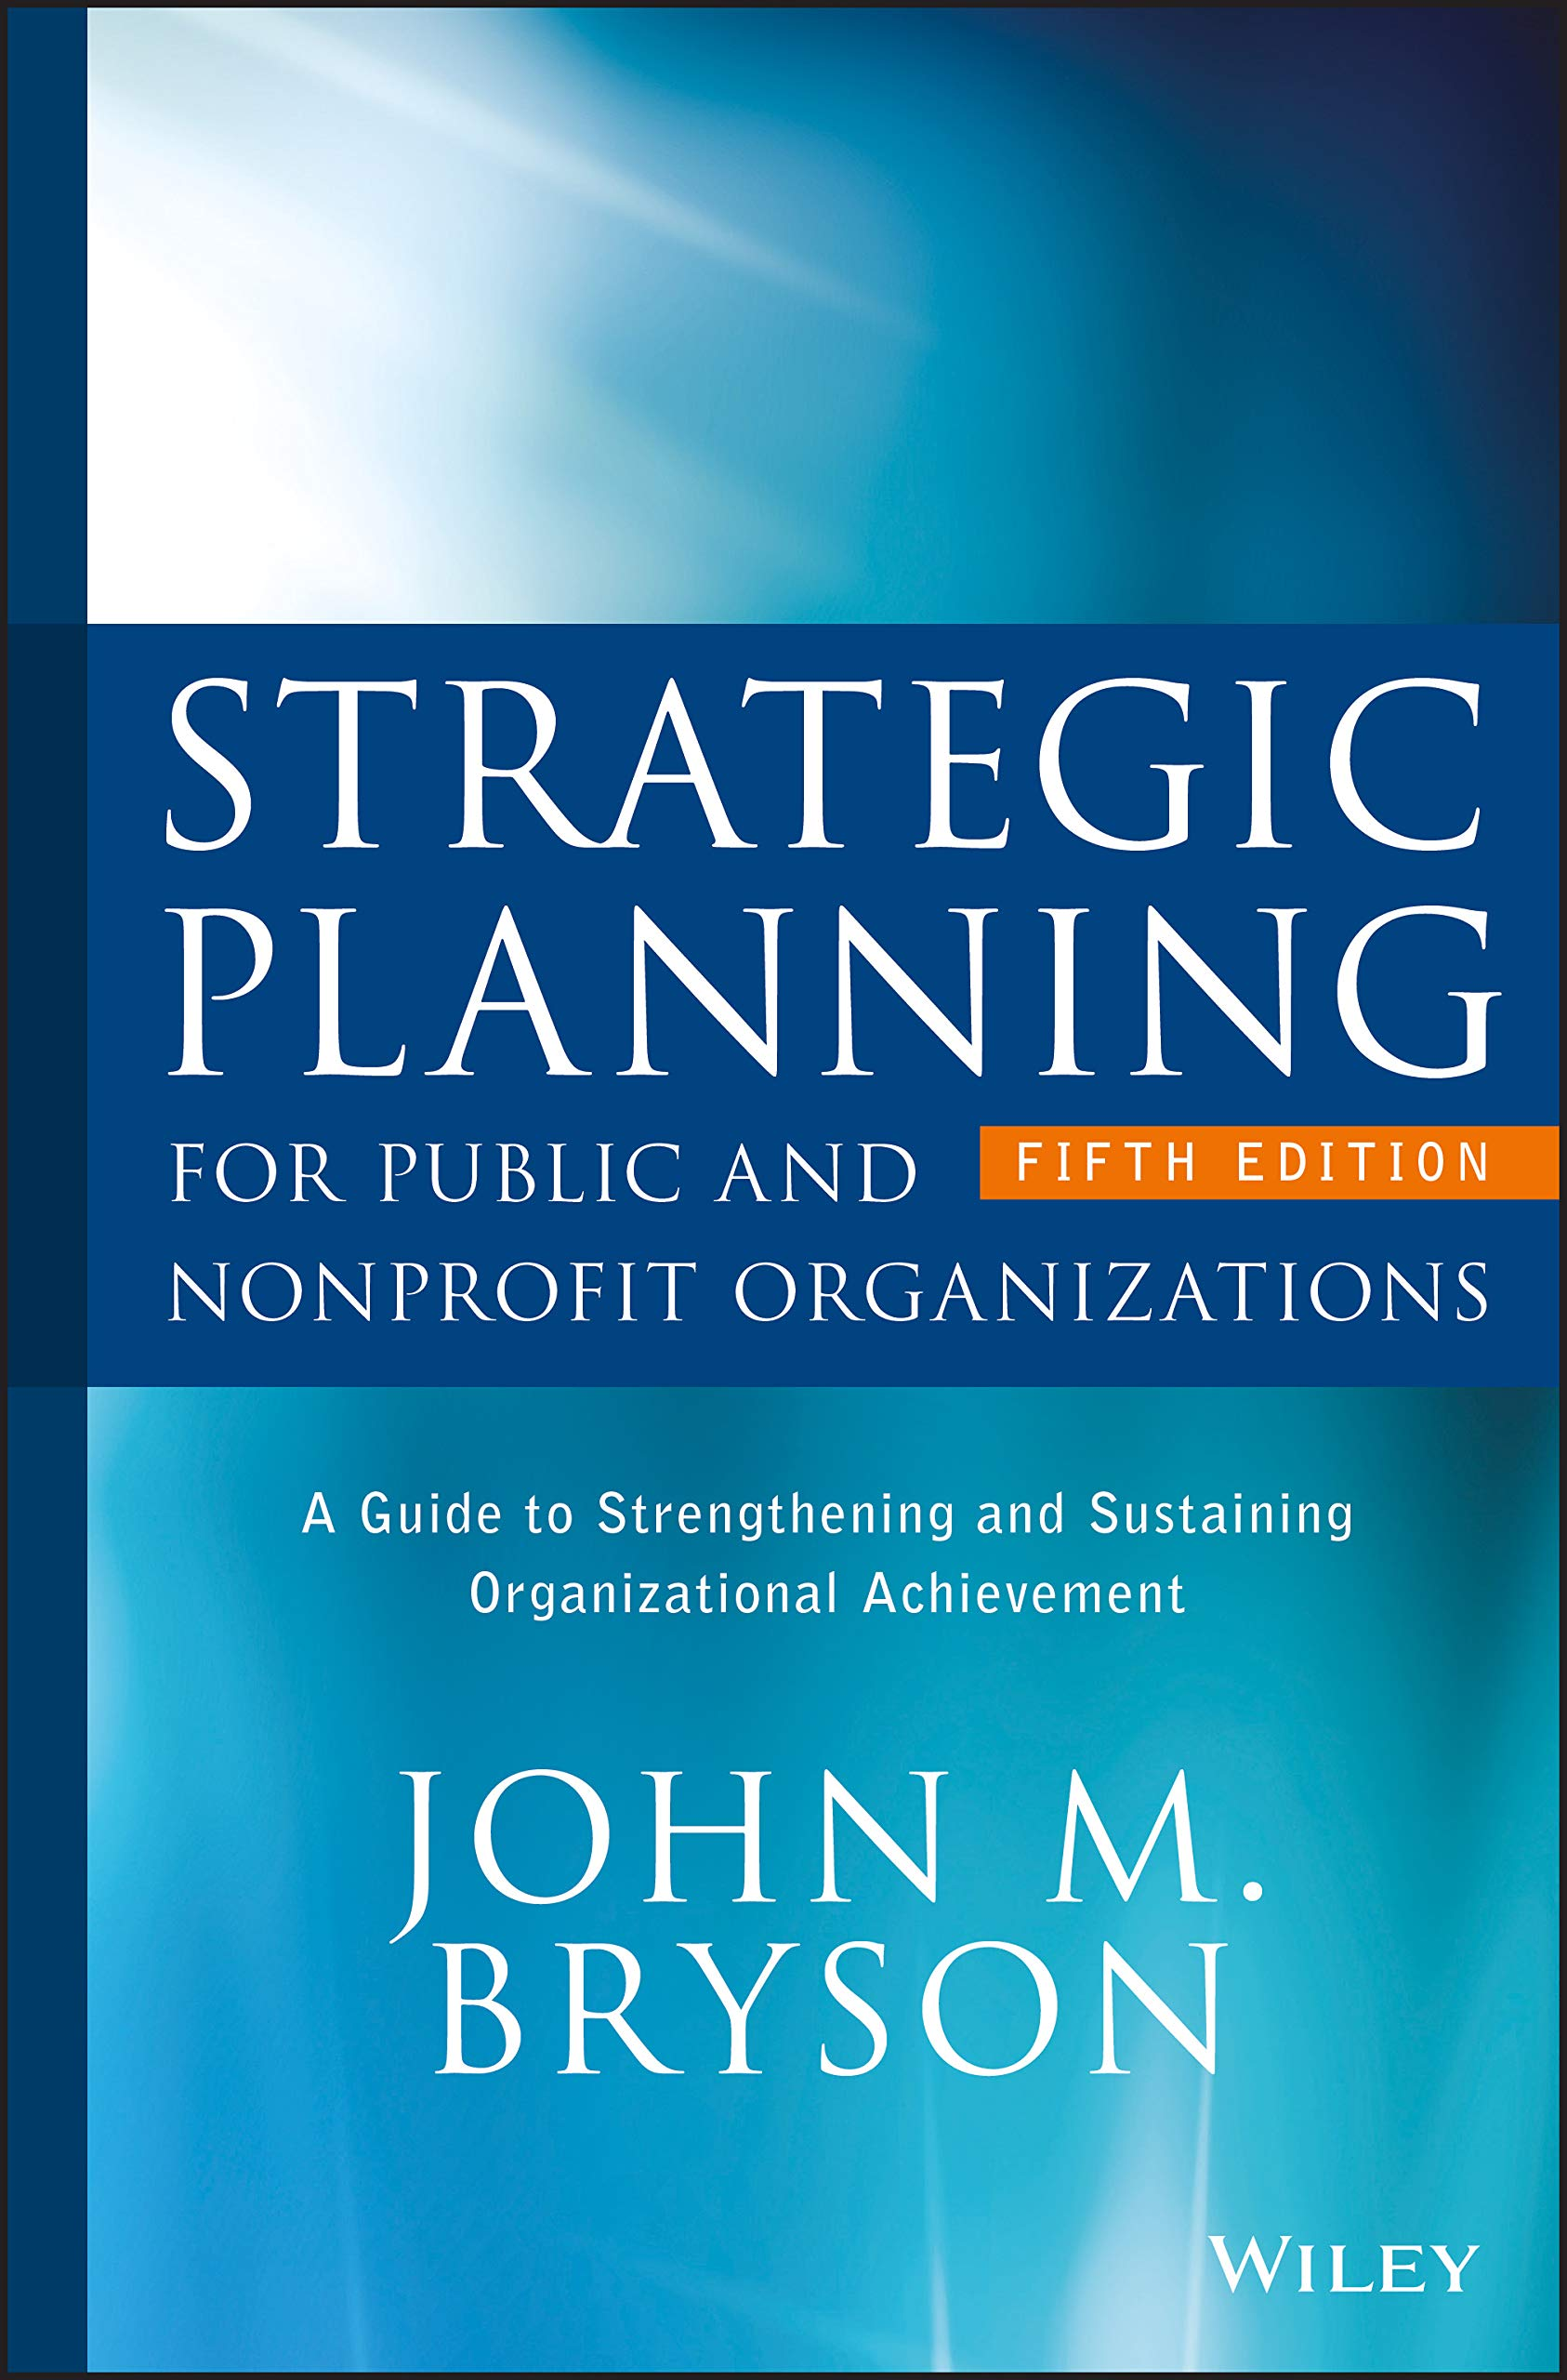 Image OfBryson, J: Strategic Planning For Public And Nonprofit Organ: A Guide To Strengthening And Sustaining Organizational Achie...